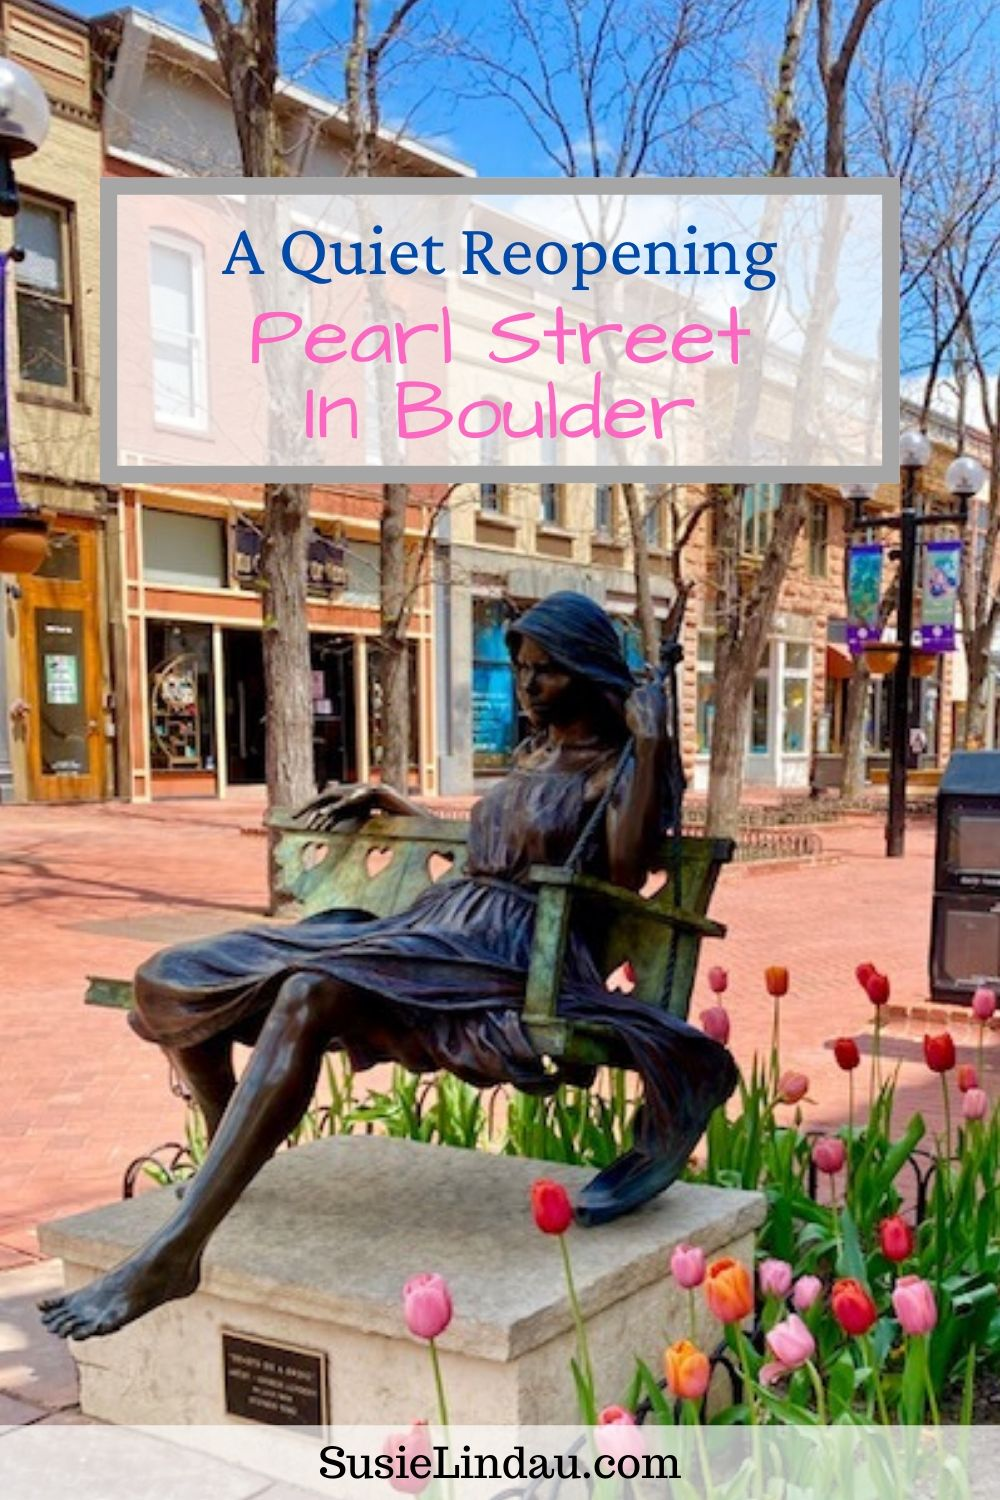 A Quiet Reopening Pearl Street in Boulder - Pinterest pin. Not many shoppers on the pedestrian mall. A statue surrounded by flowers